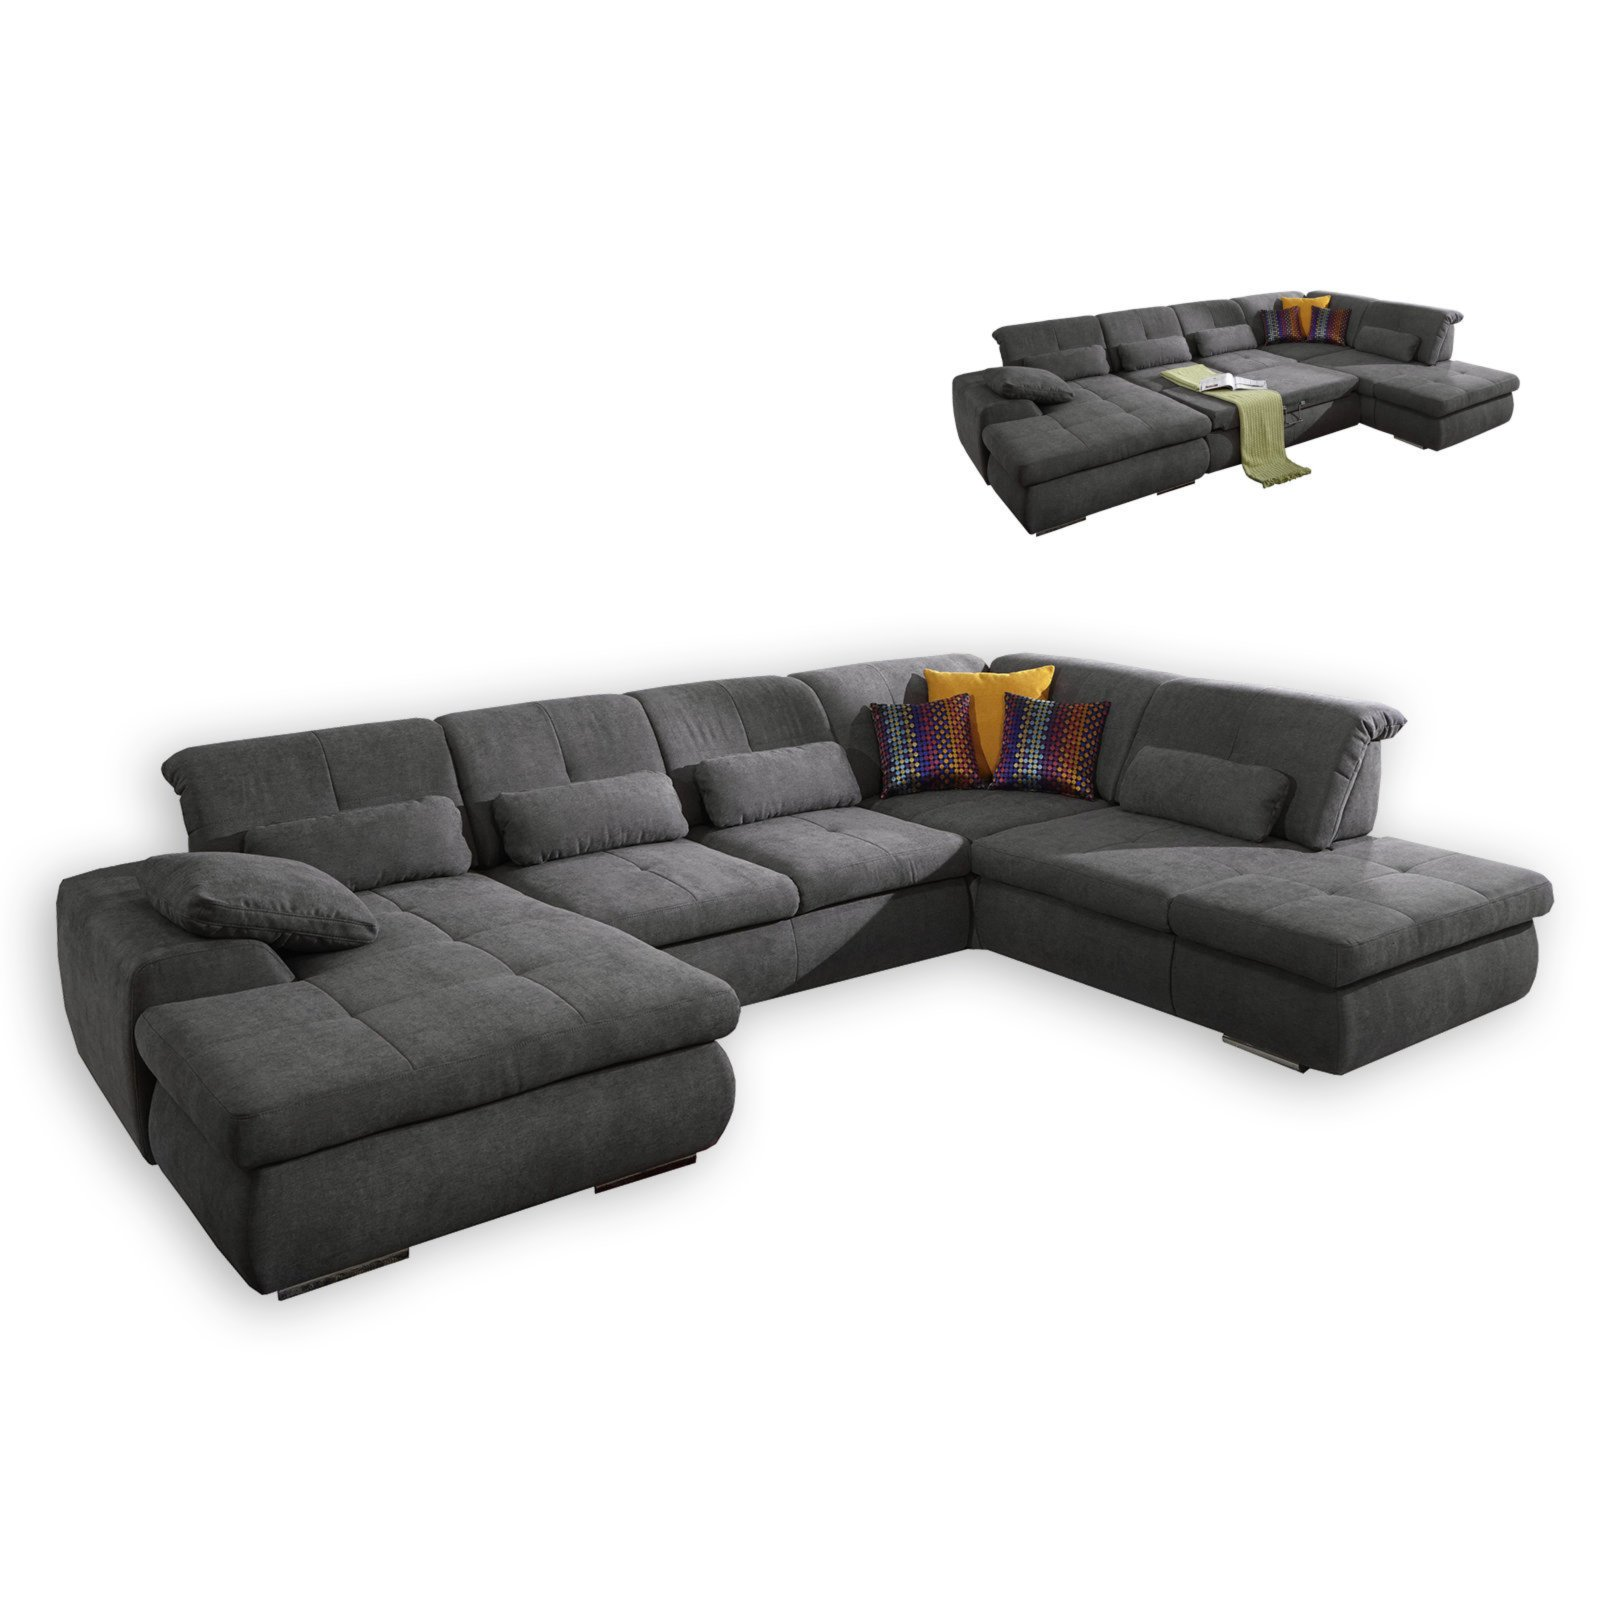 wohnlandschaft anthrazit mit liegefunktion wohnlandschaften u form sofas couches. Black Bedroom Furniture Sets. Home Design Ideas